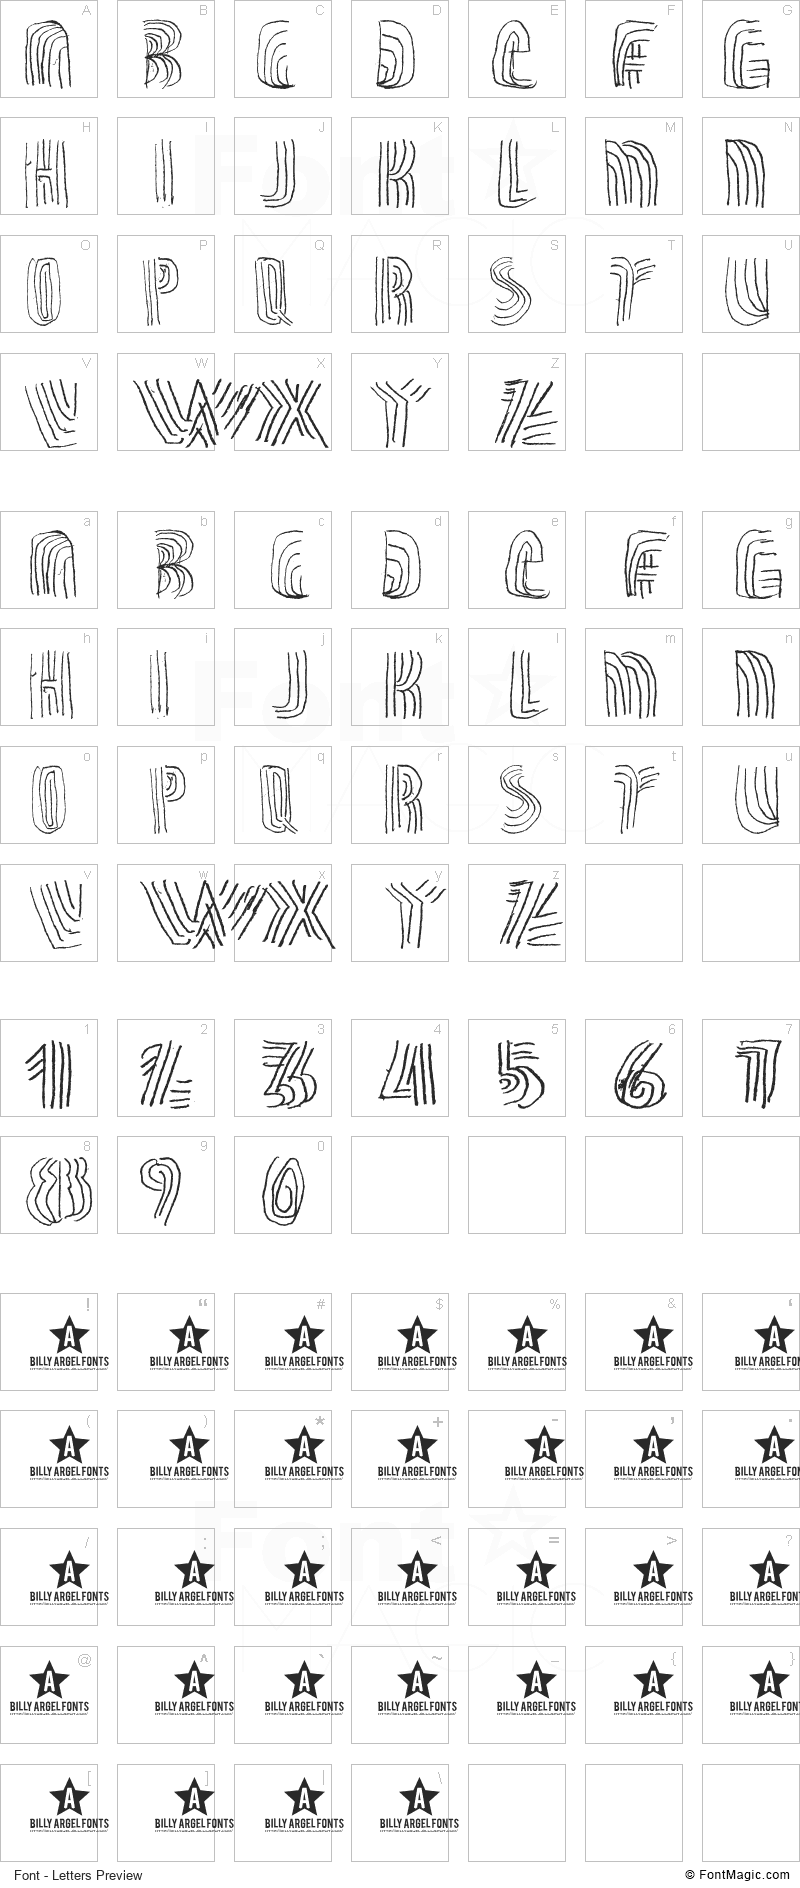 Thrashline Font - All Latters Preview Chart